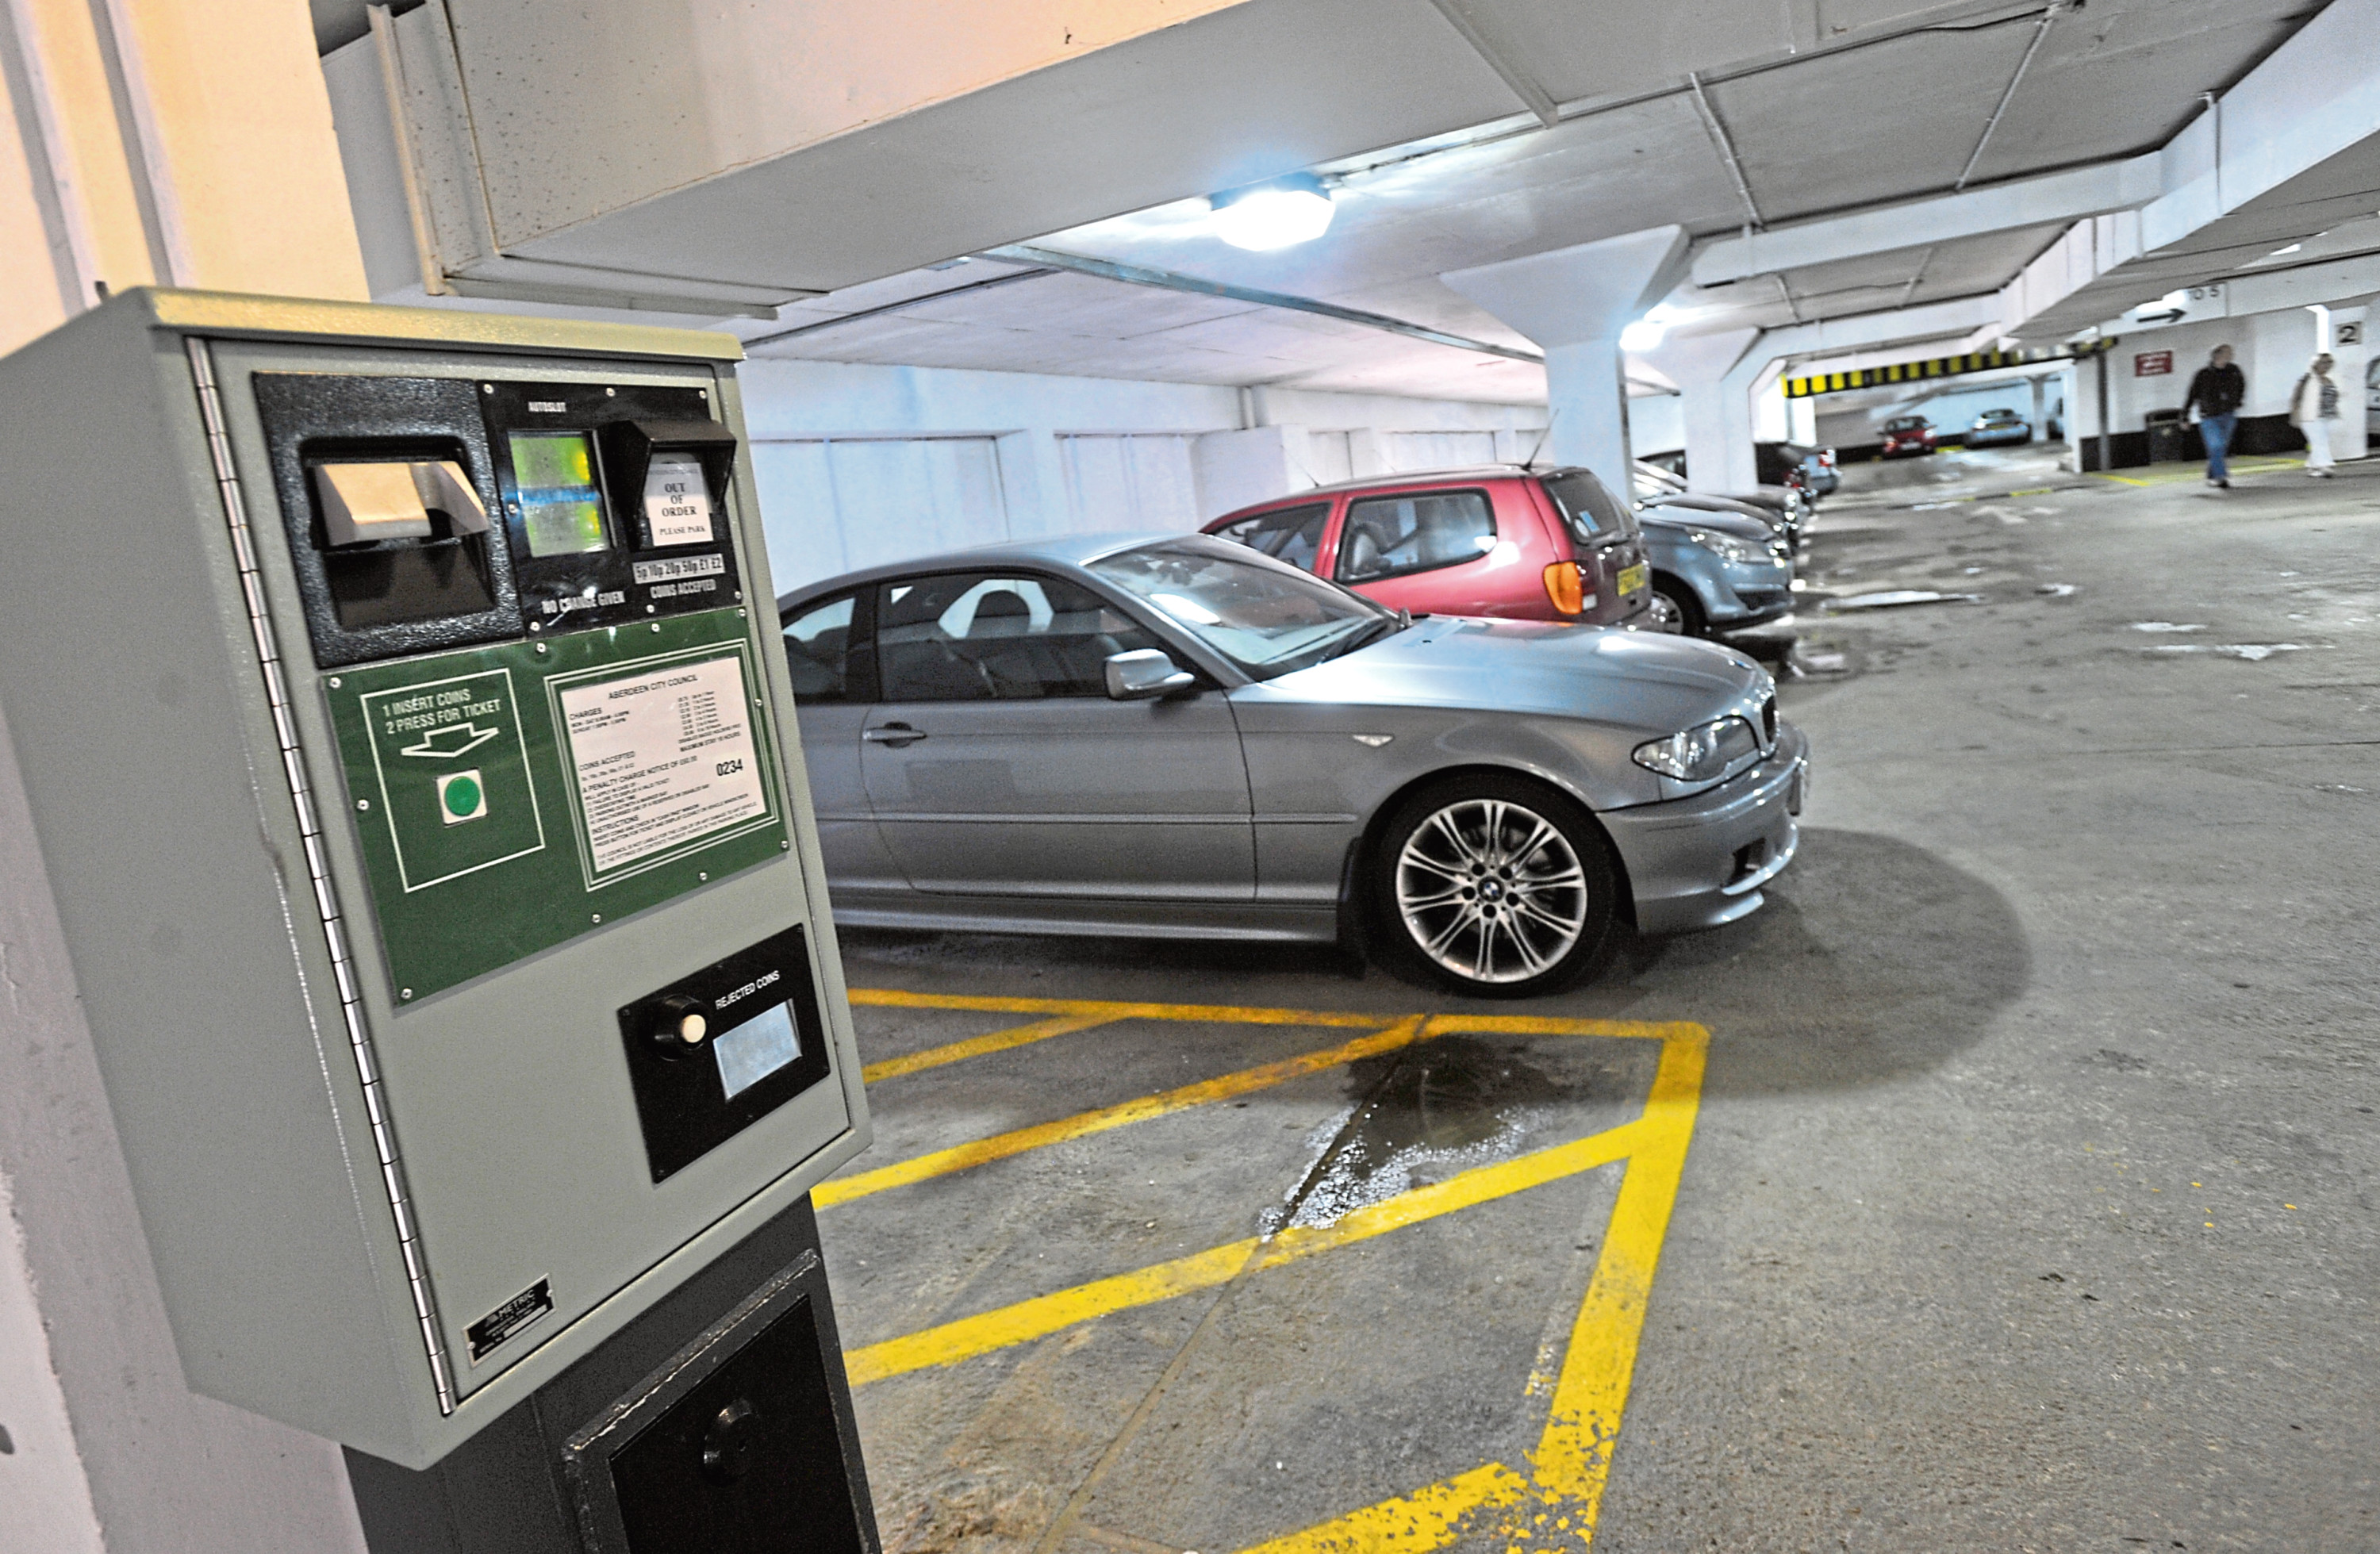 The Alive After Five car parking scheme will be scrapped from April 1